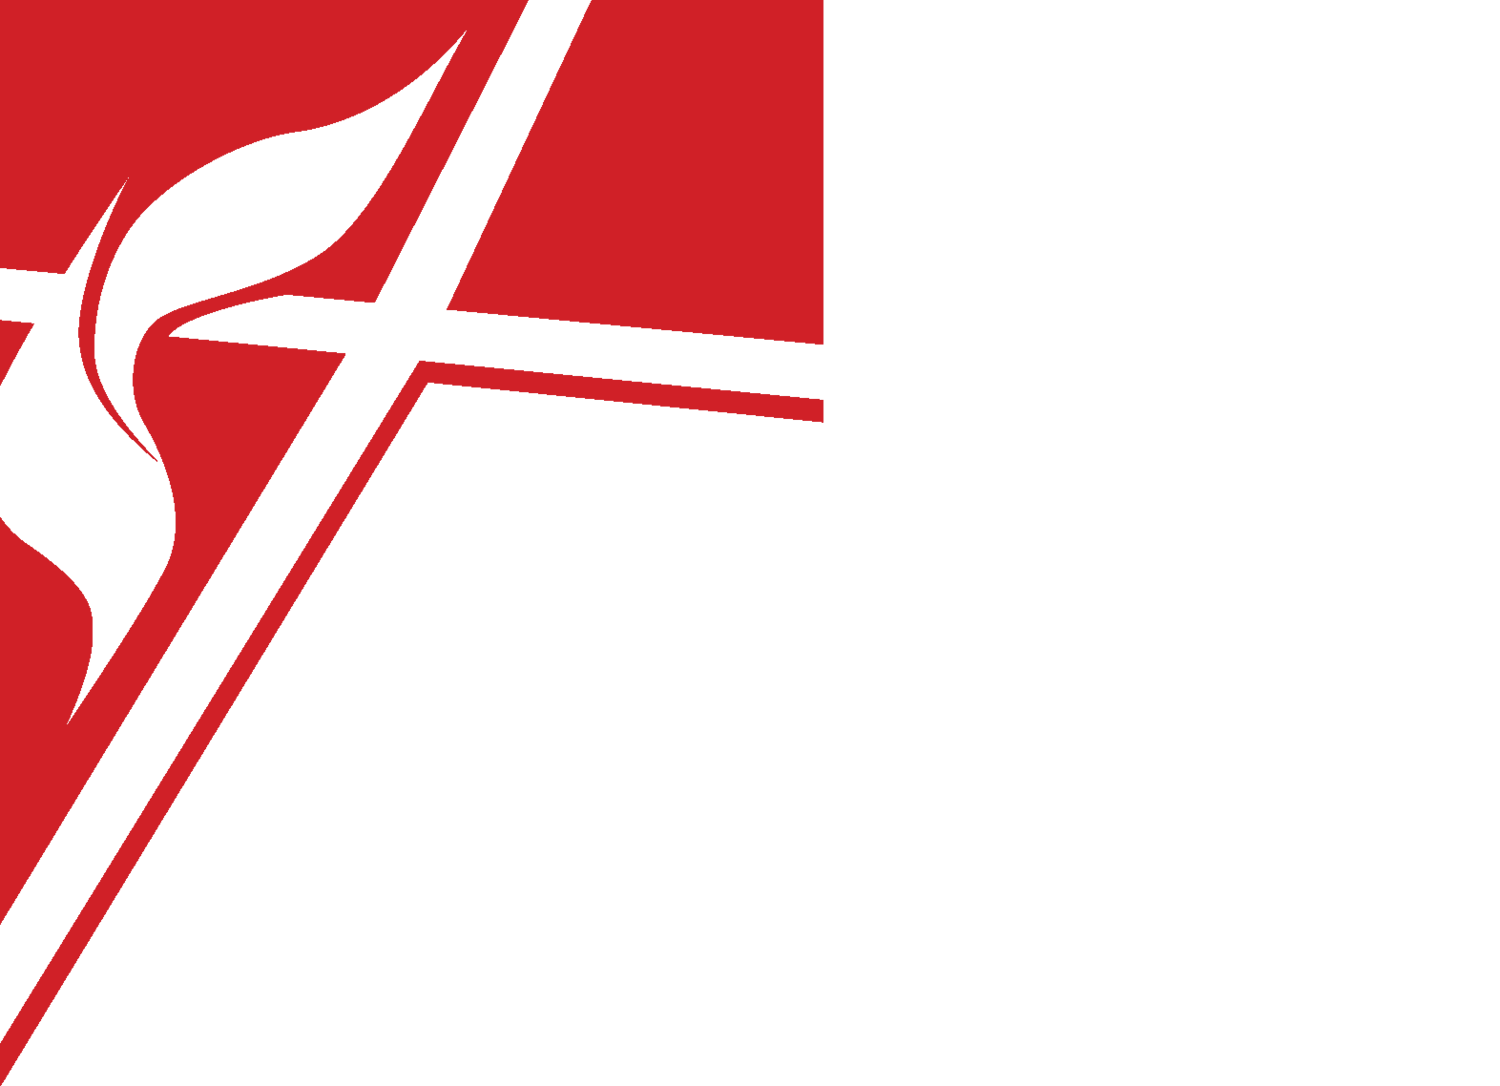 West U Methodist